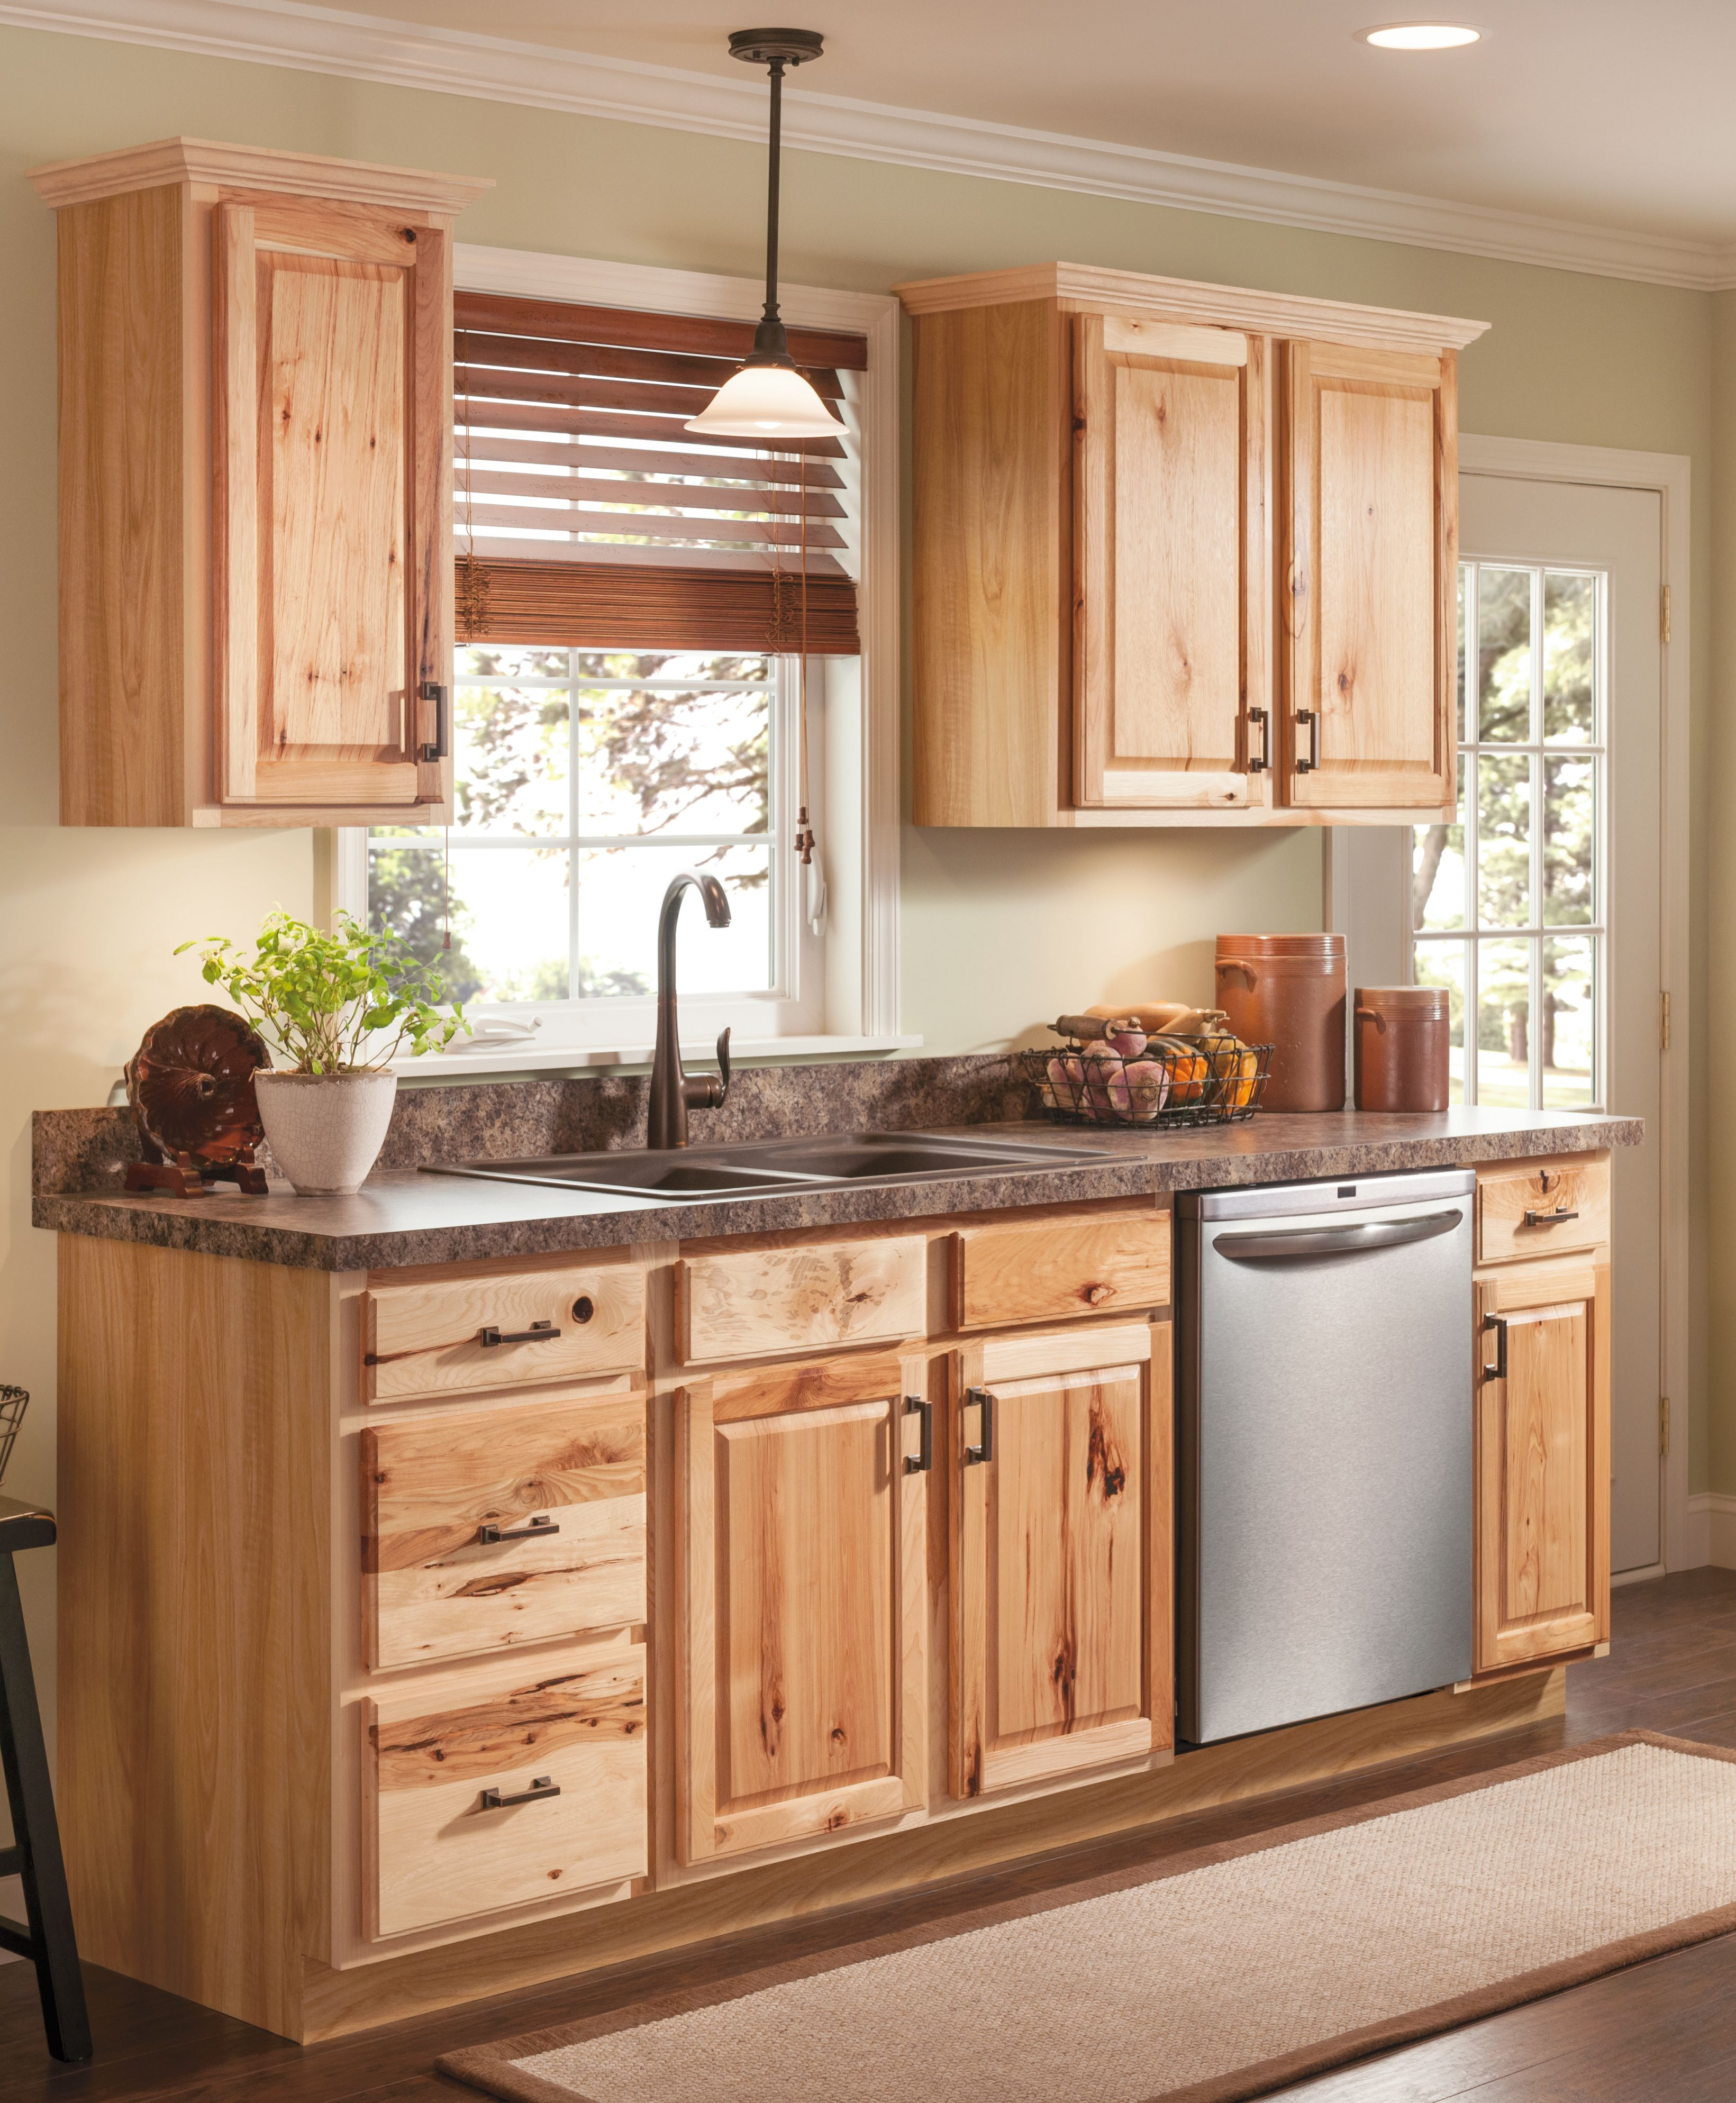 Pinterest Cabinets Kitchen Natural Hickory Cabinets On Pinterest Hickory Kitchen